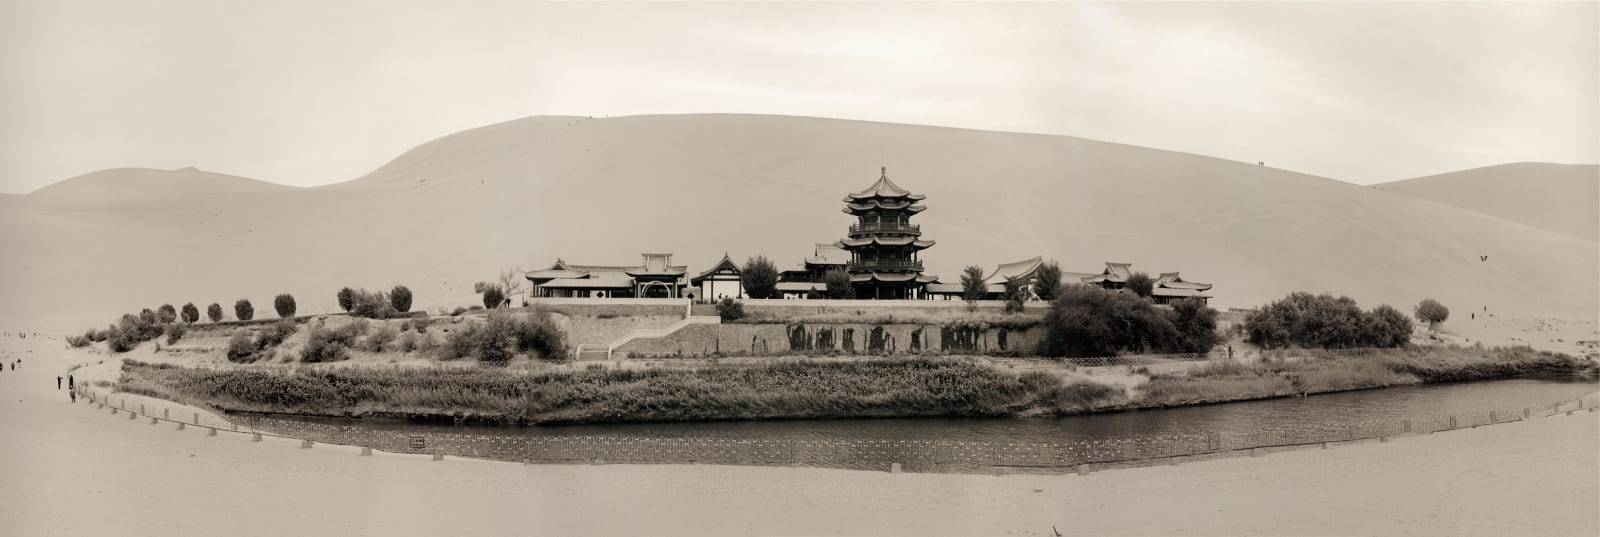 Oasis with pagoda at Crescent Moon Spring, Dunhuang in China, by Lynn Davis